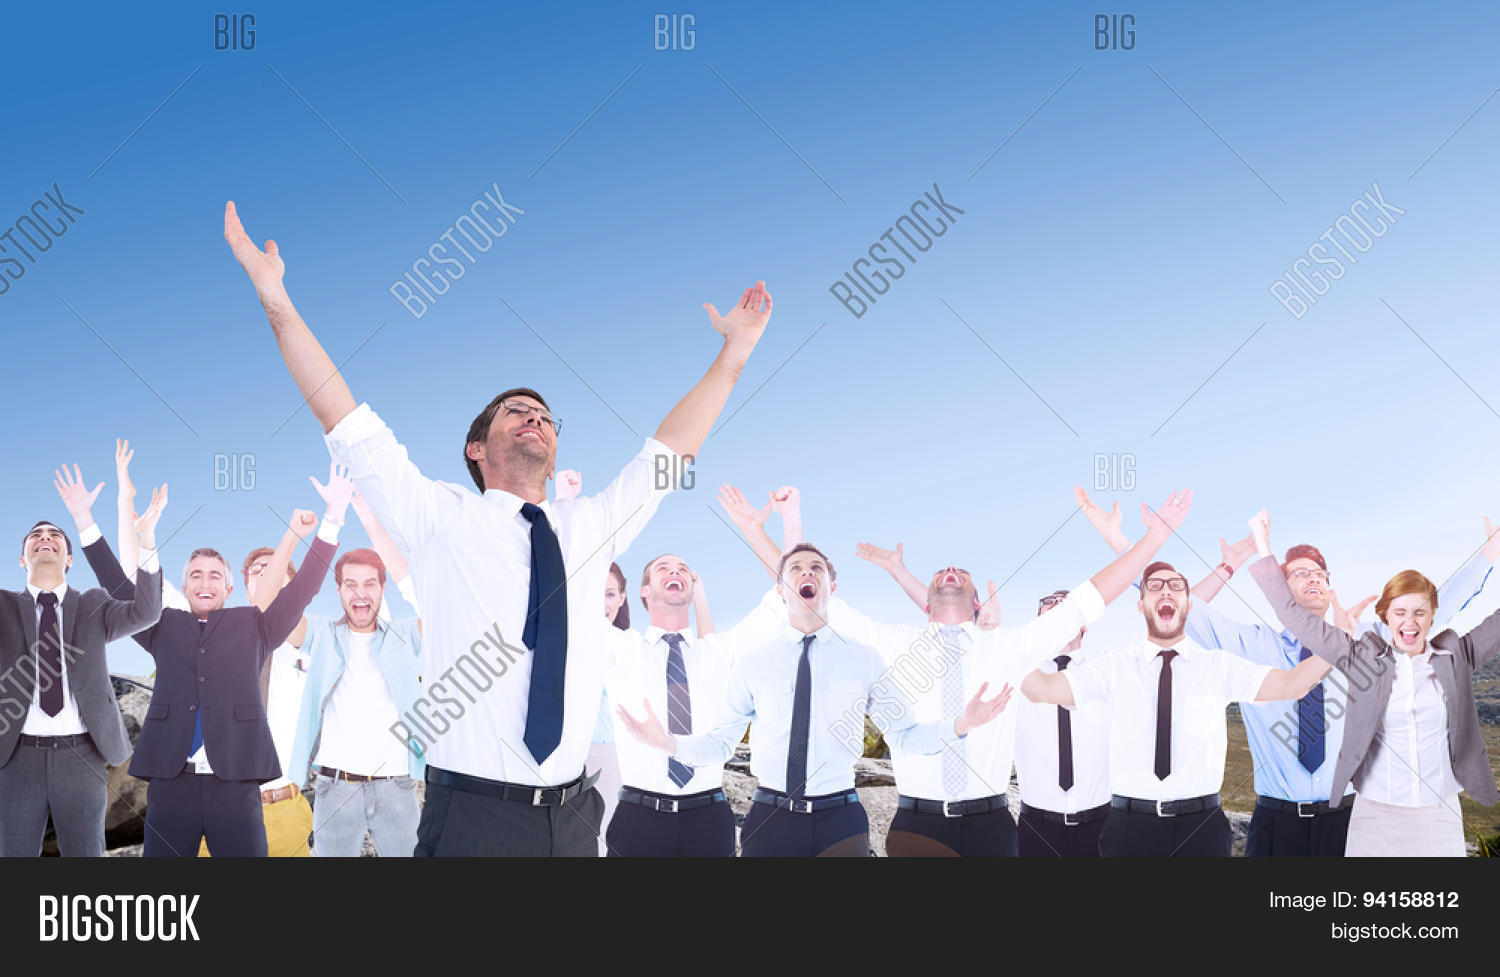 Handsome businessman cheering with arms up against mountain trail